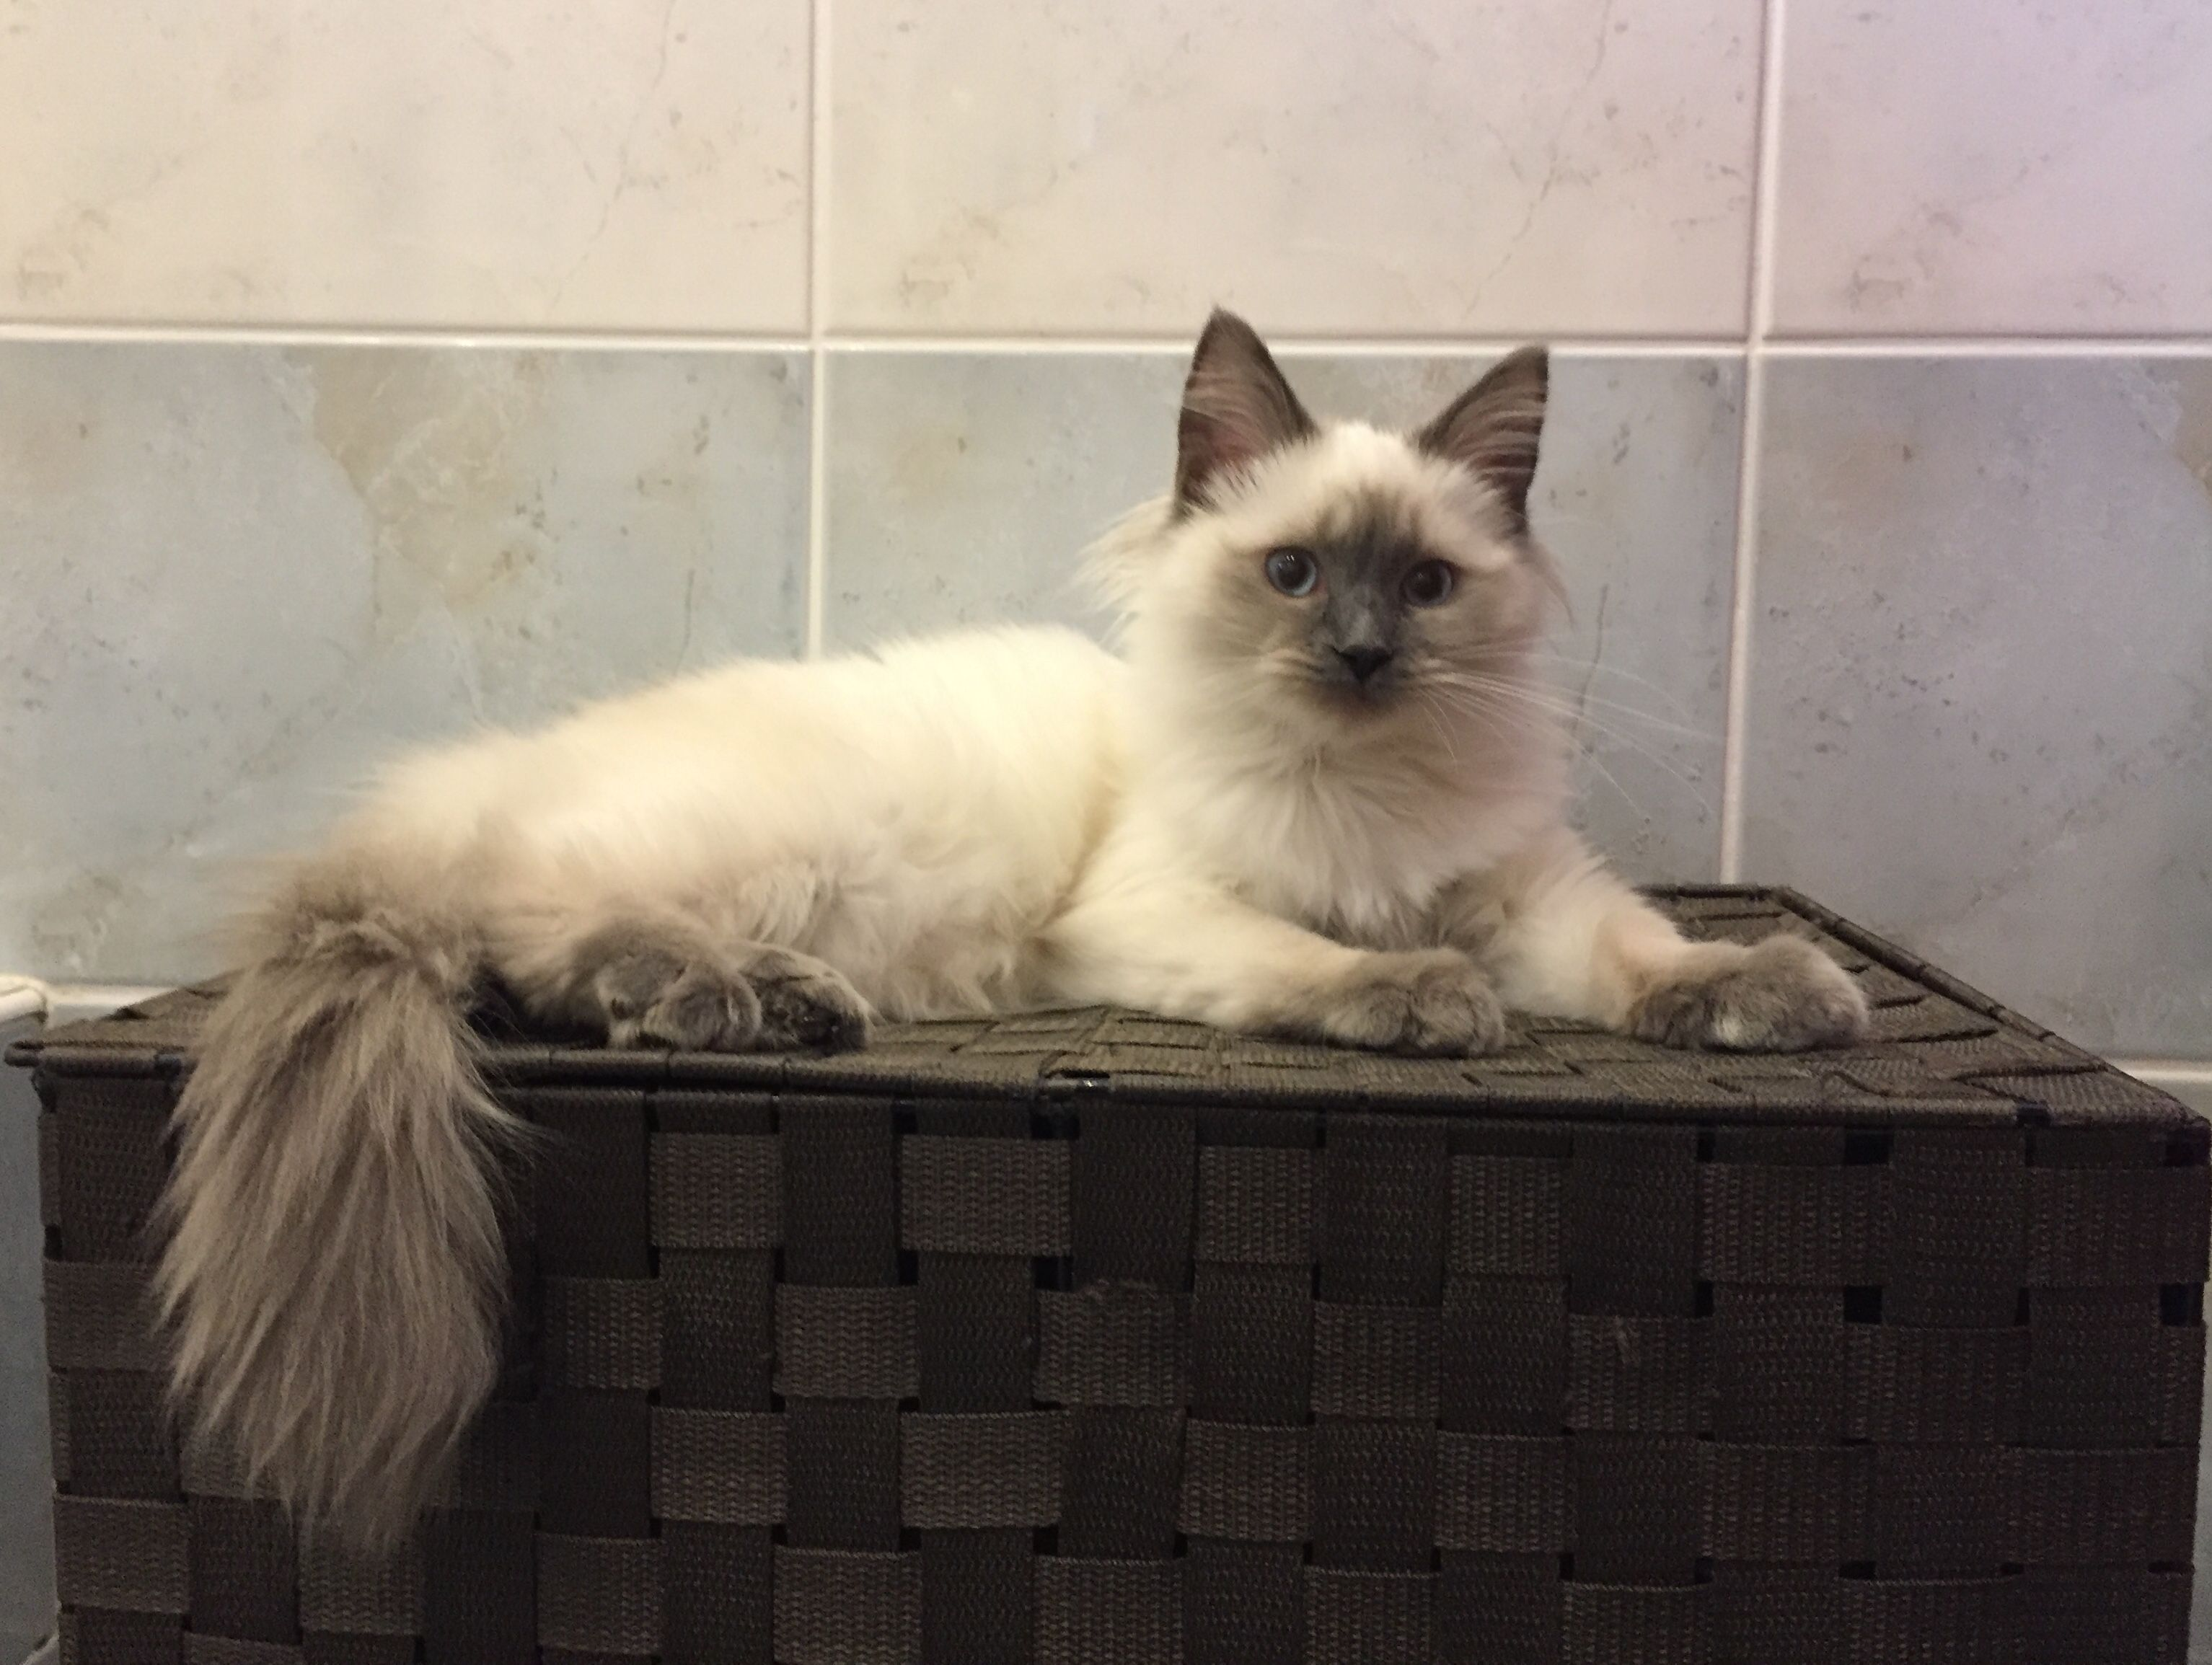 Ouzo Our Sweet Male Blue Point Ragdoll Kitten 5 Months Old Ragdoll Cats For Sale Ragdoll Kitten Crazy Cats